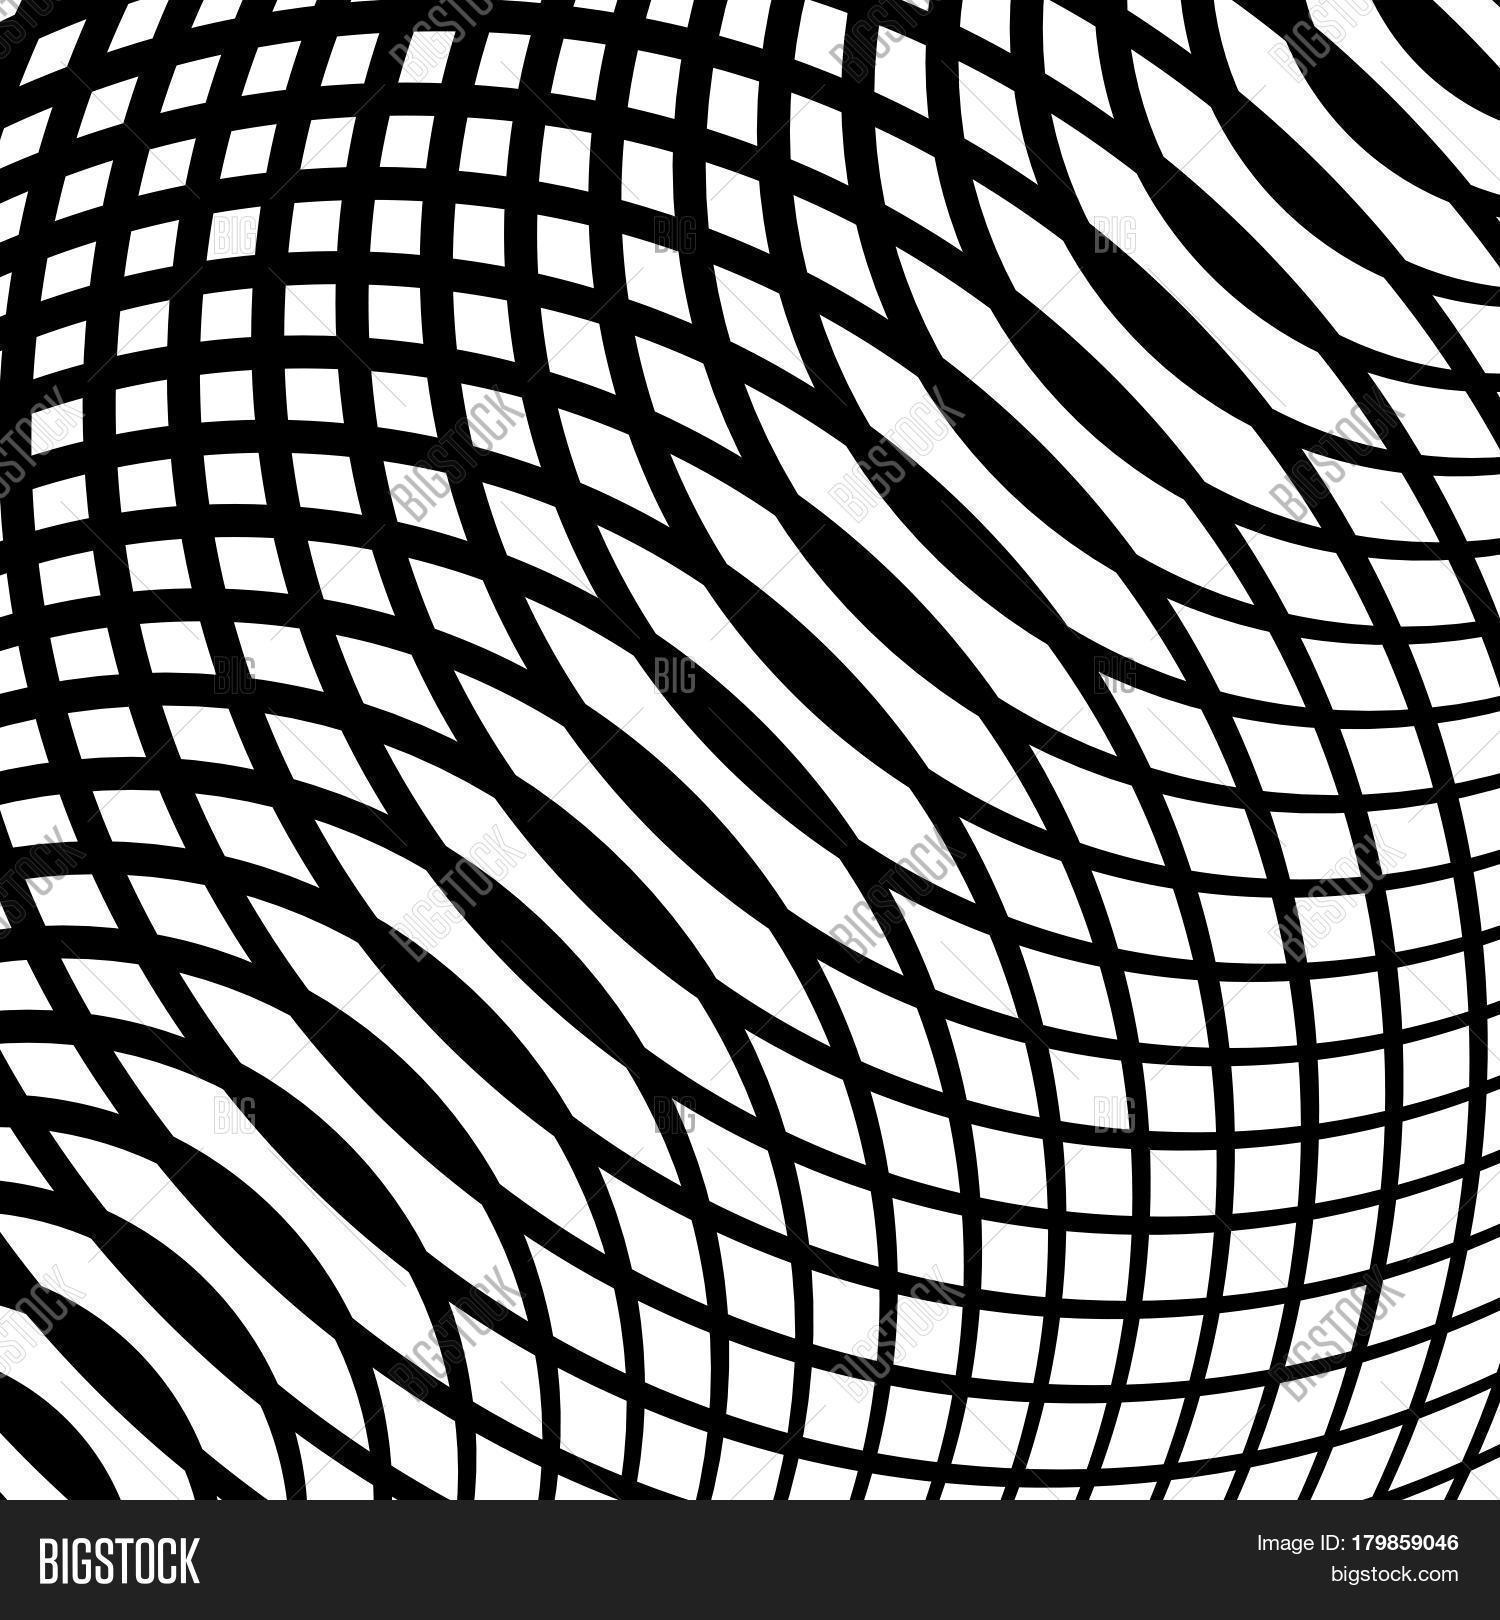 1500x1620 Grid, Mesh Curved Lines. Cellular Vector Amp Photo Bigstock